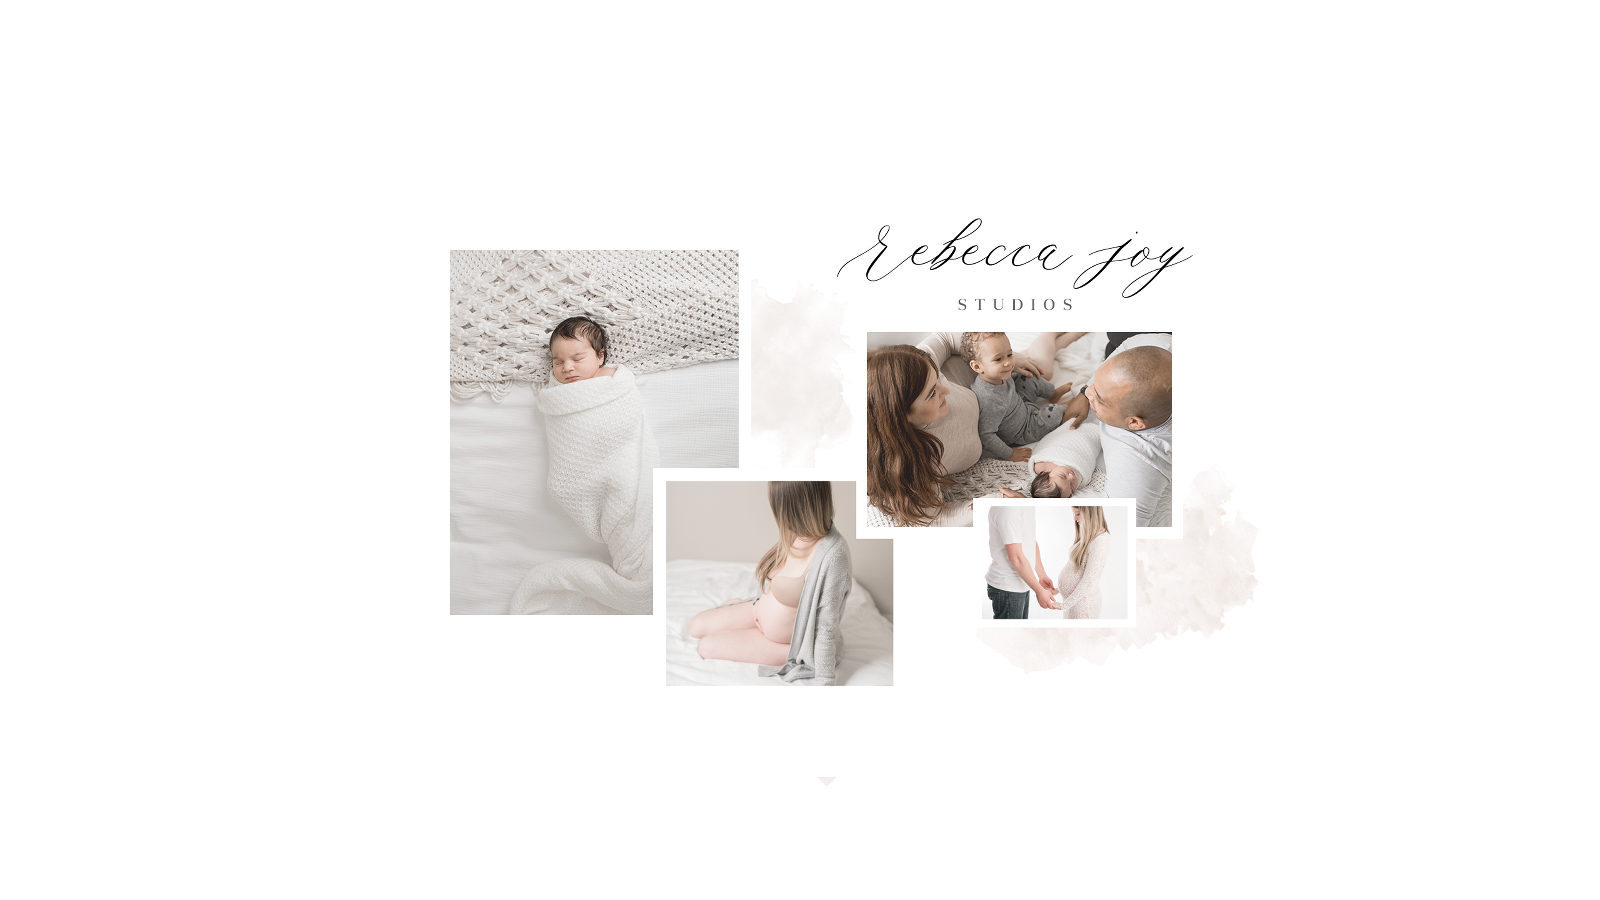 victoria-maternity-photographer-rebecca-joy-studios